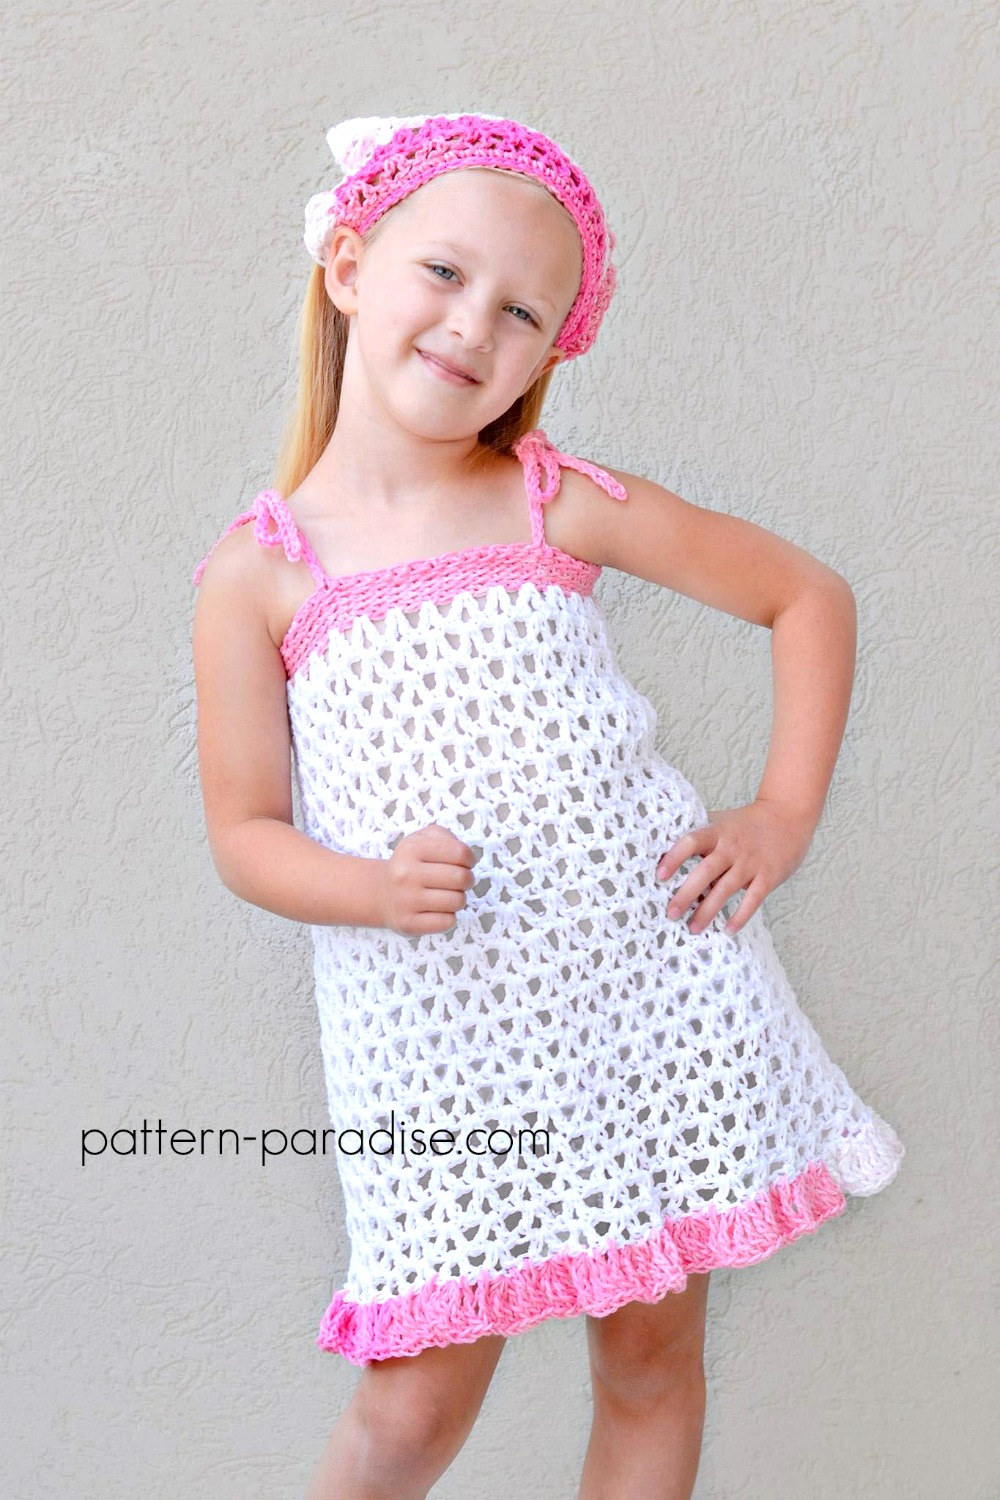 Free Crochet Pattern: Summer Cheer Dress and Kerchief Set | Pattern ...